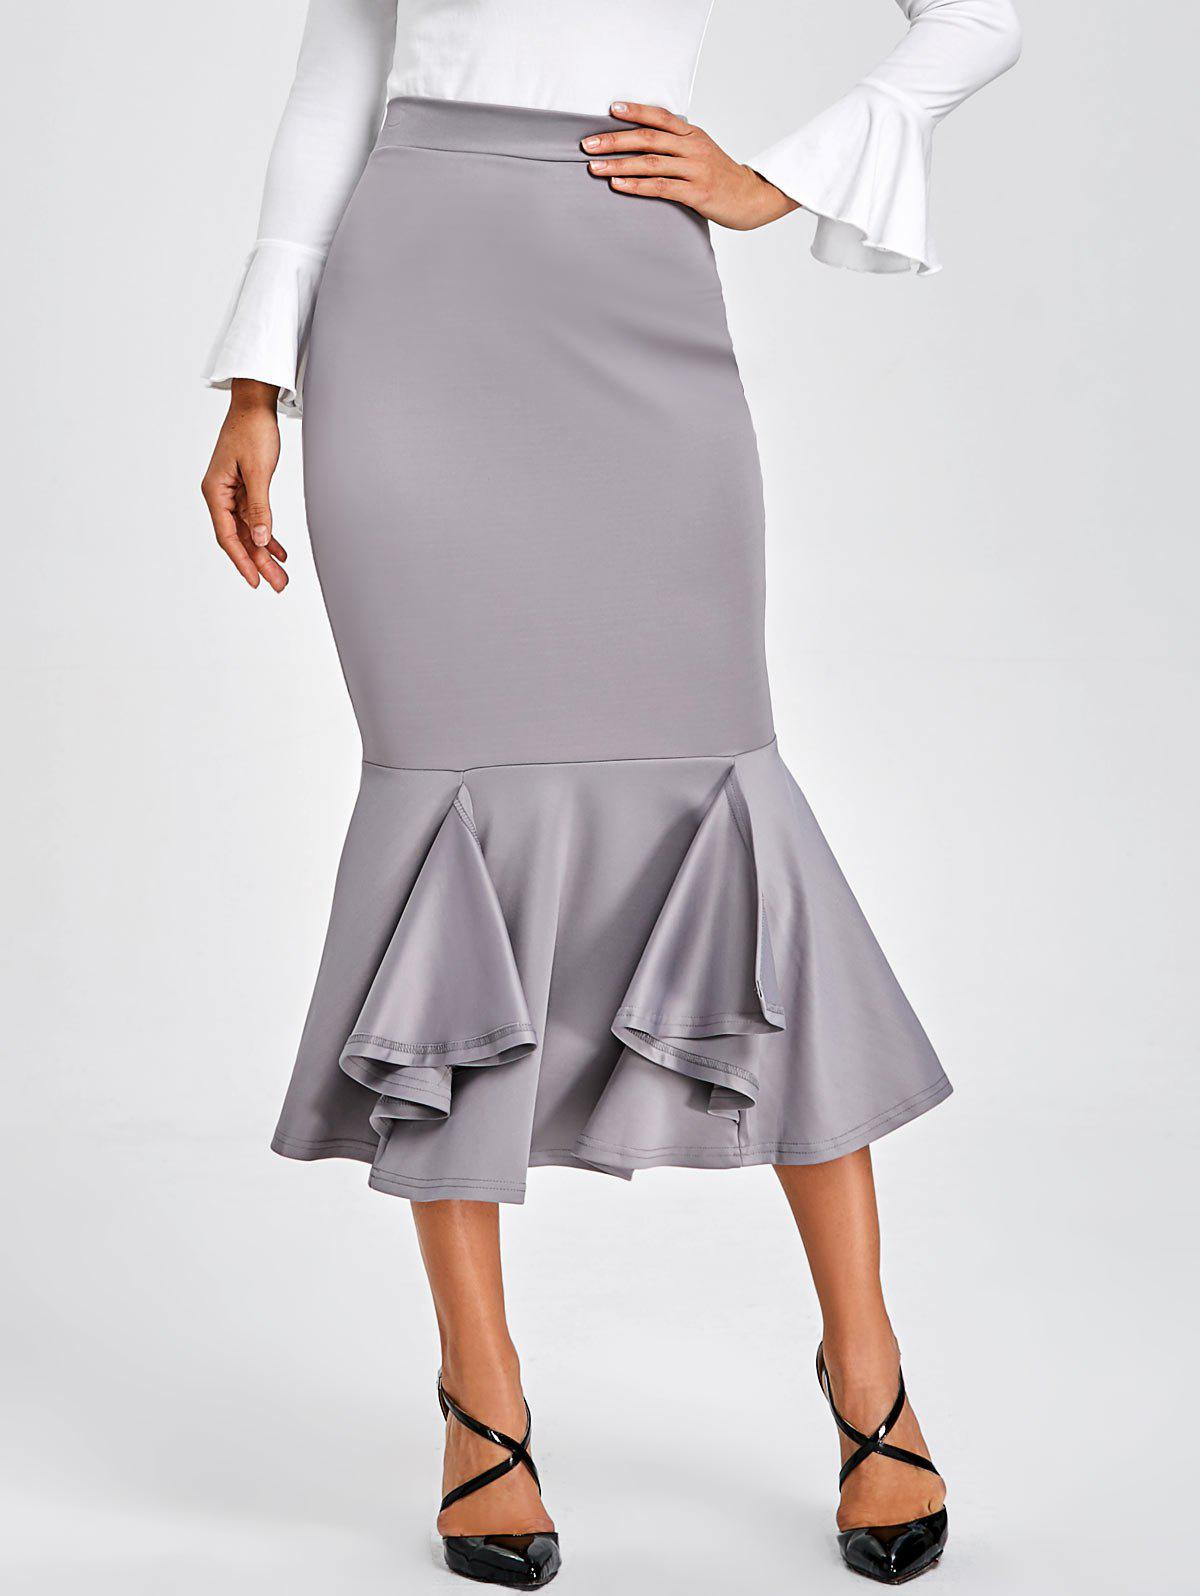 Bodycon Mermaid Midi Skirt - GRAY S